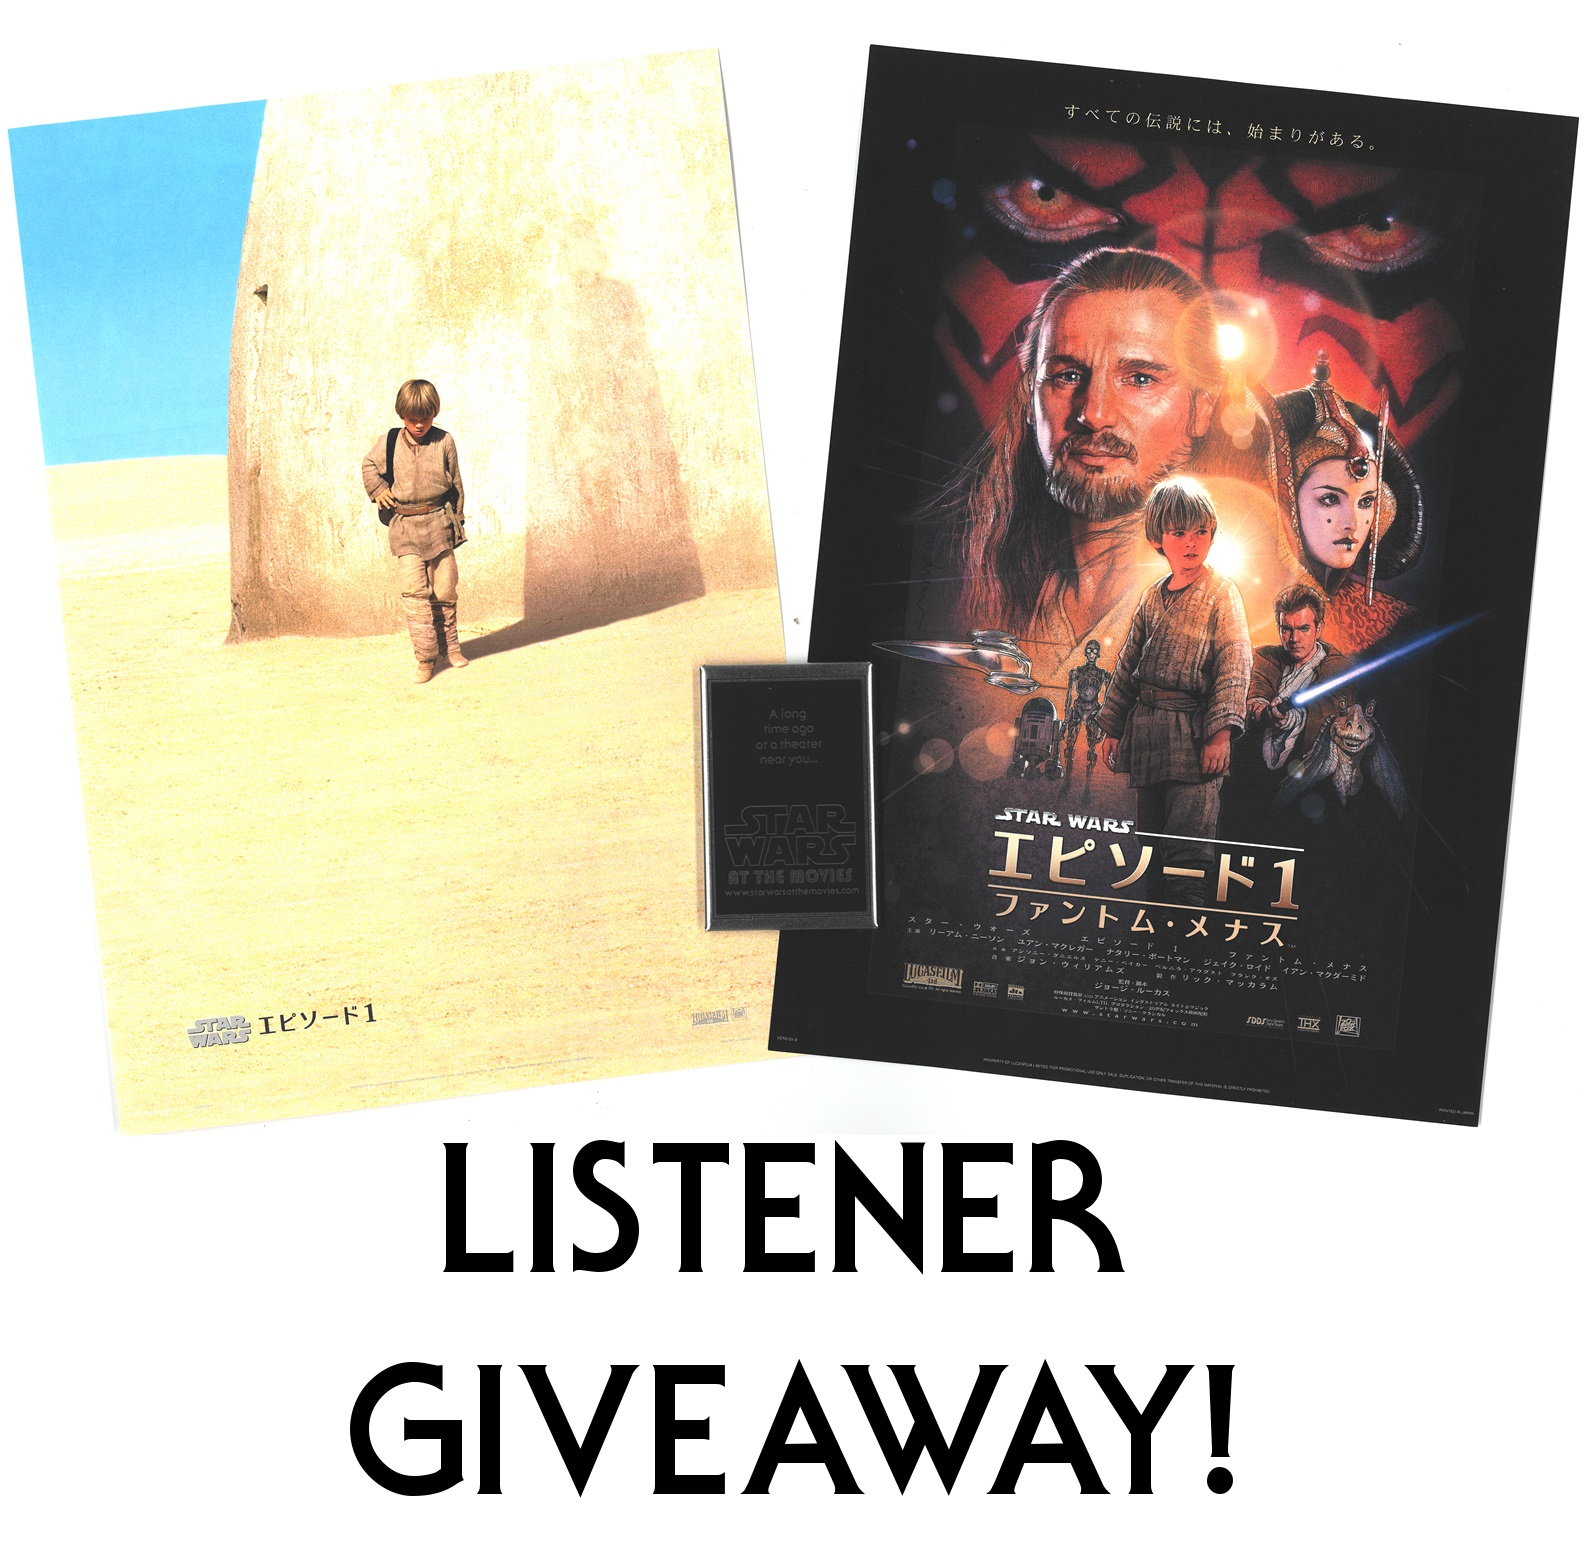 "PODCAST LISTENER GIVEAWAY!  To celebrate the 20th Anniversary of Episode I as well as ""Season 3"" of the podcast kicking off this coming Sunday May 19th, I'll be doing a themed listener giveaway!  Two prize packs that include a set of Episode I Chirashi Japanese handbills along with a nifty ""Star Wars at the Movies"" fridge magnet can be yours. All you'll need to do for a chance to win is:  A) Like/follow Star Wars at the Movies on Facebook, Instagram (@starwarsatthemovies), or Twitter (@SWattheMovies)  B) Rate and leave a review for the podcast on iTunes or whichever other platform you listen on.  C) Snag a screenshot of your review and send it in via direct message on any of these social media platforms or via email to starwarsatthemovies@gmail.com"